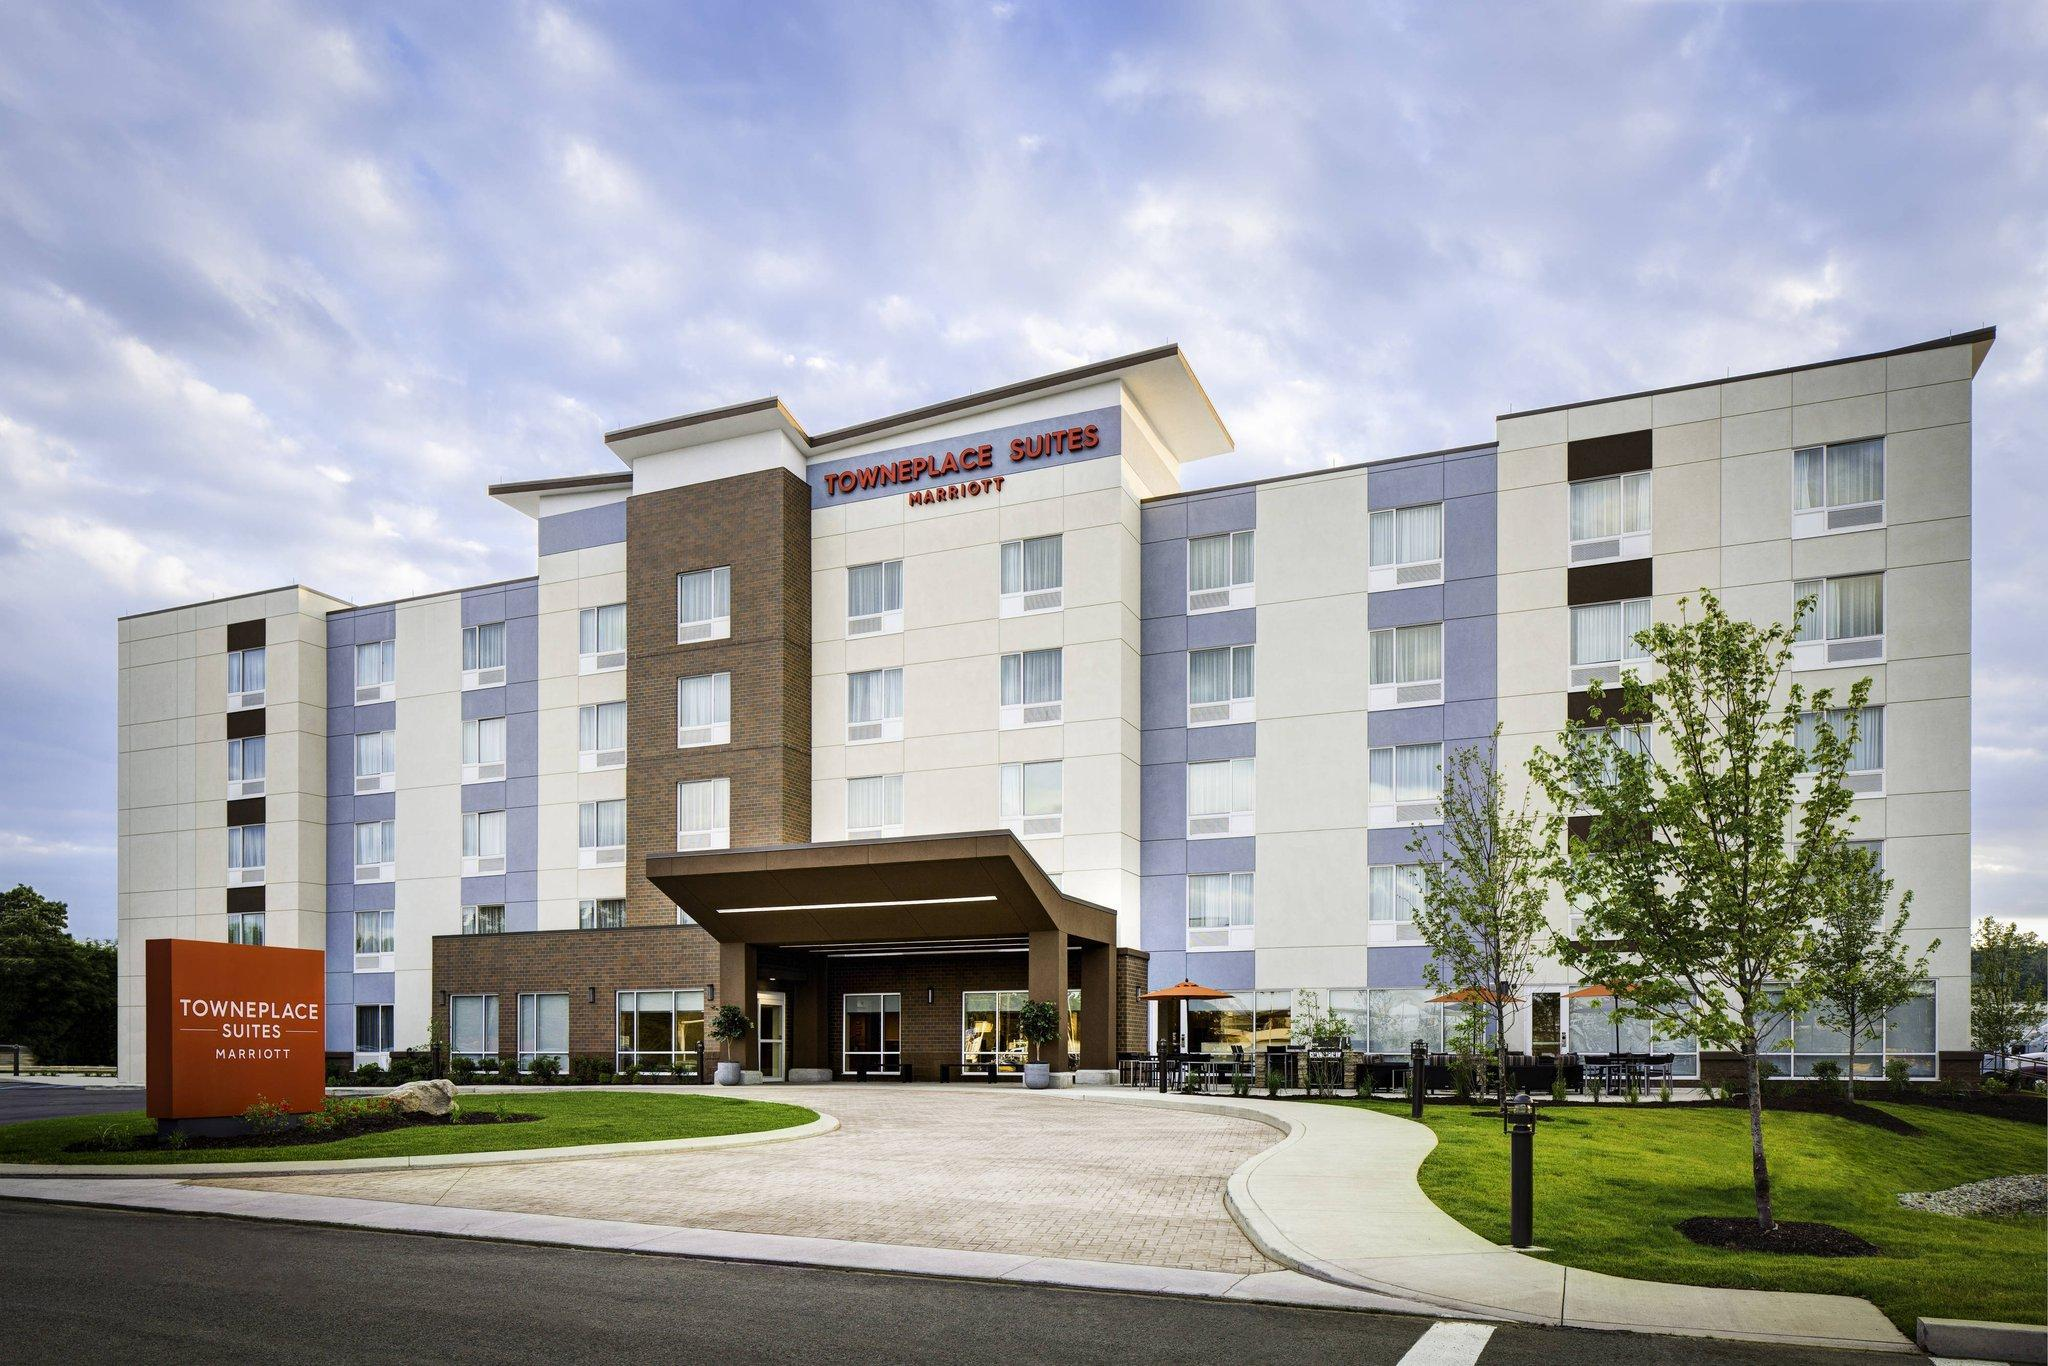 TownePlace Suites Clarksville